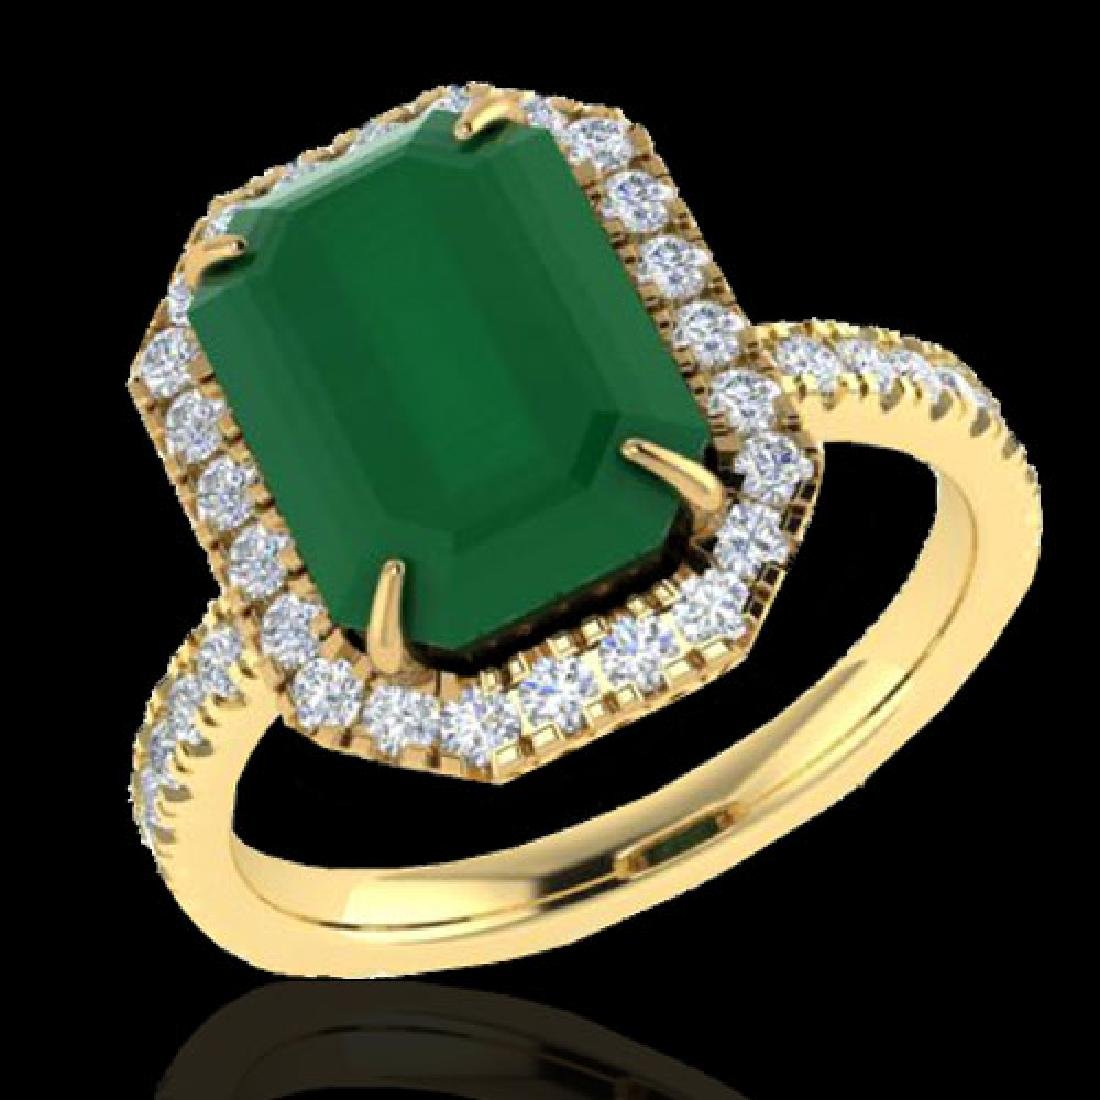 5.33 CTW Emerald And Micro Pave VS/SI Diamond Halo Ring - 2